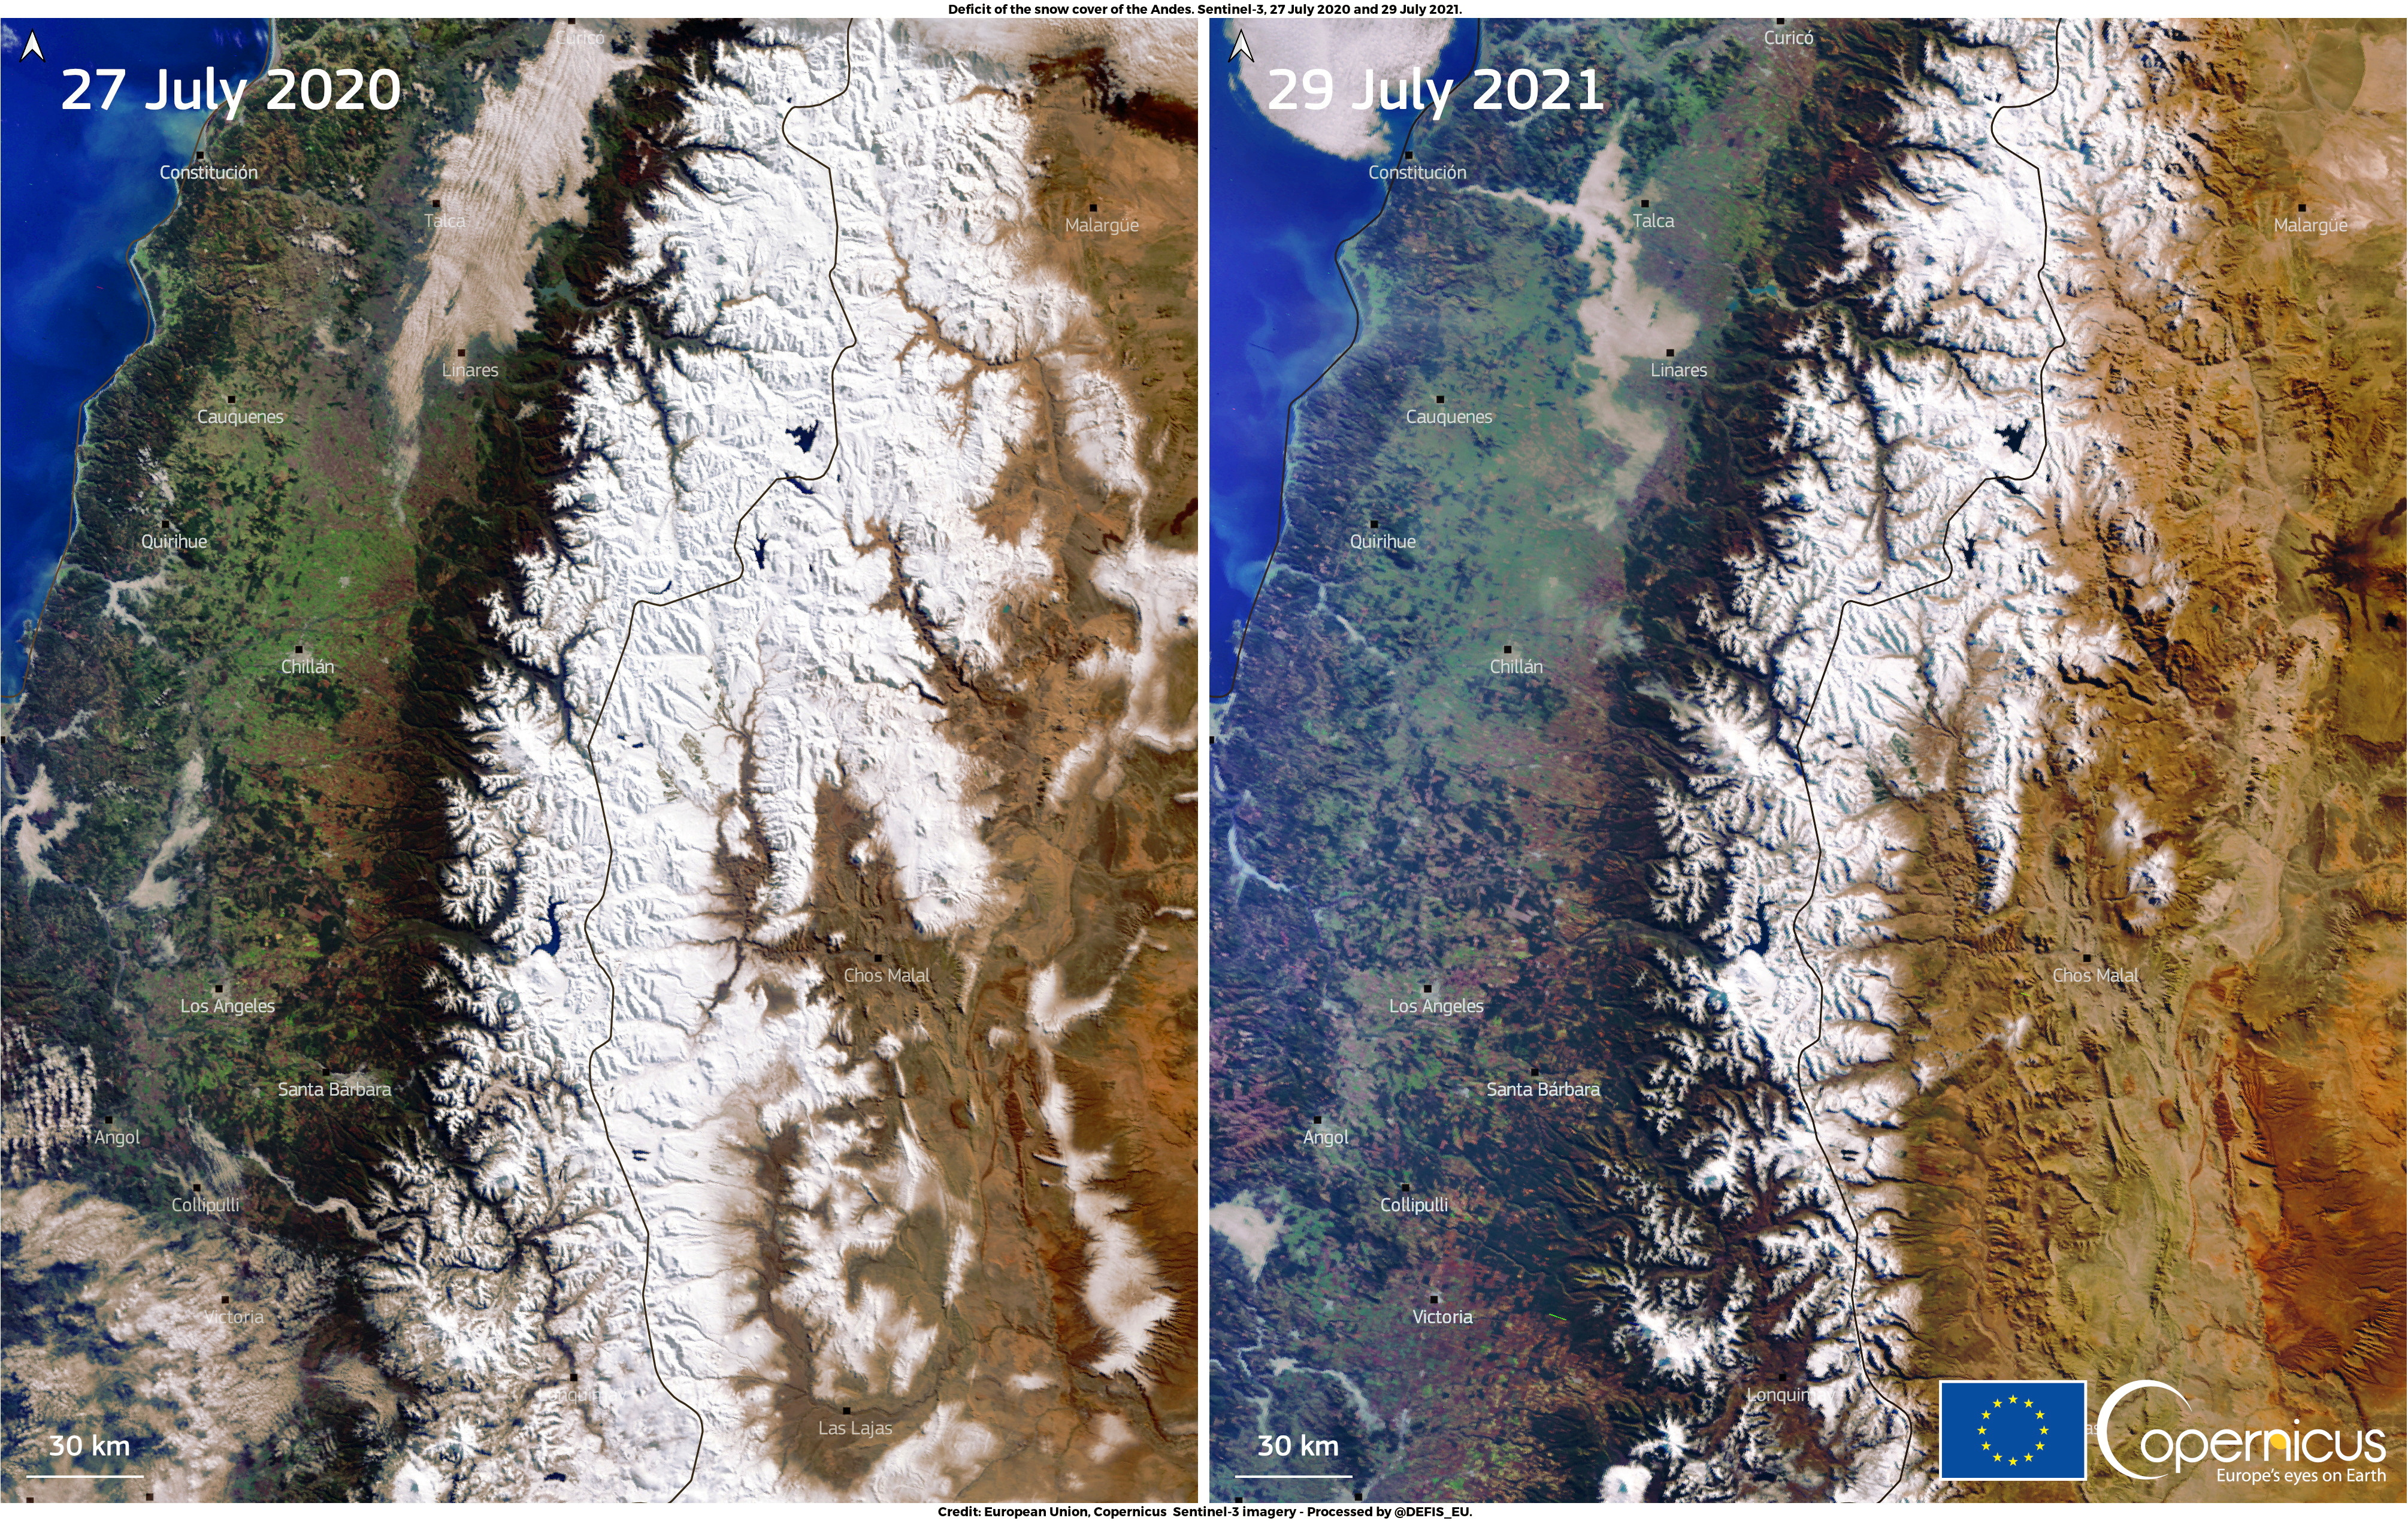 A combination of images, acquired by one of the Copernicus Sentinel-3 satellites, shows the snow deficit affecting the Andes mountain range in South America. Pictures taken July 27, 2020 and July 29, 2021. European Union, Copernicus Sentinel-3 Imagery, Processed By DG DEFIS/Handout via REUTERS